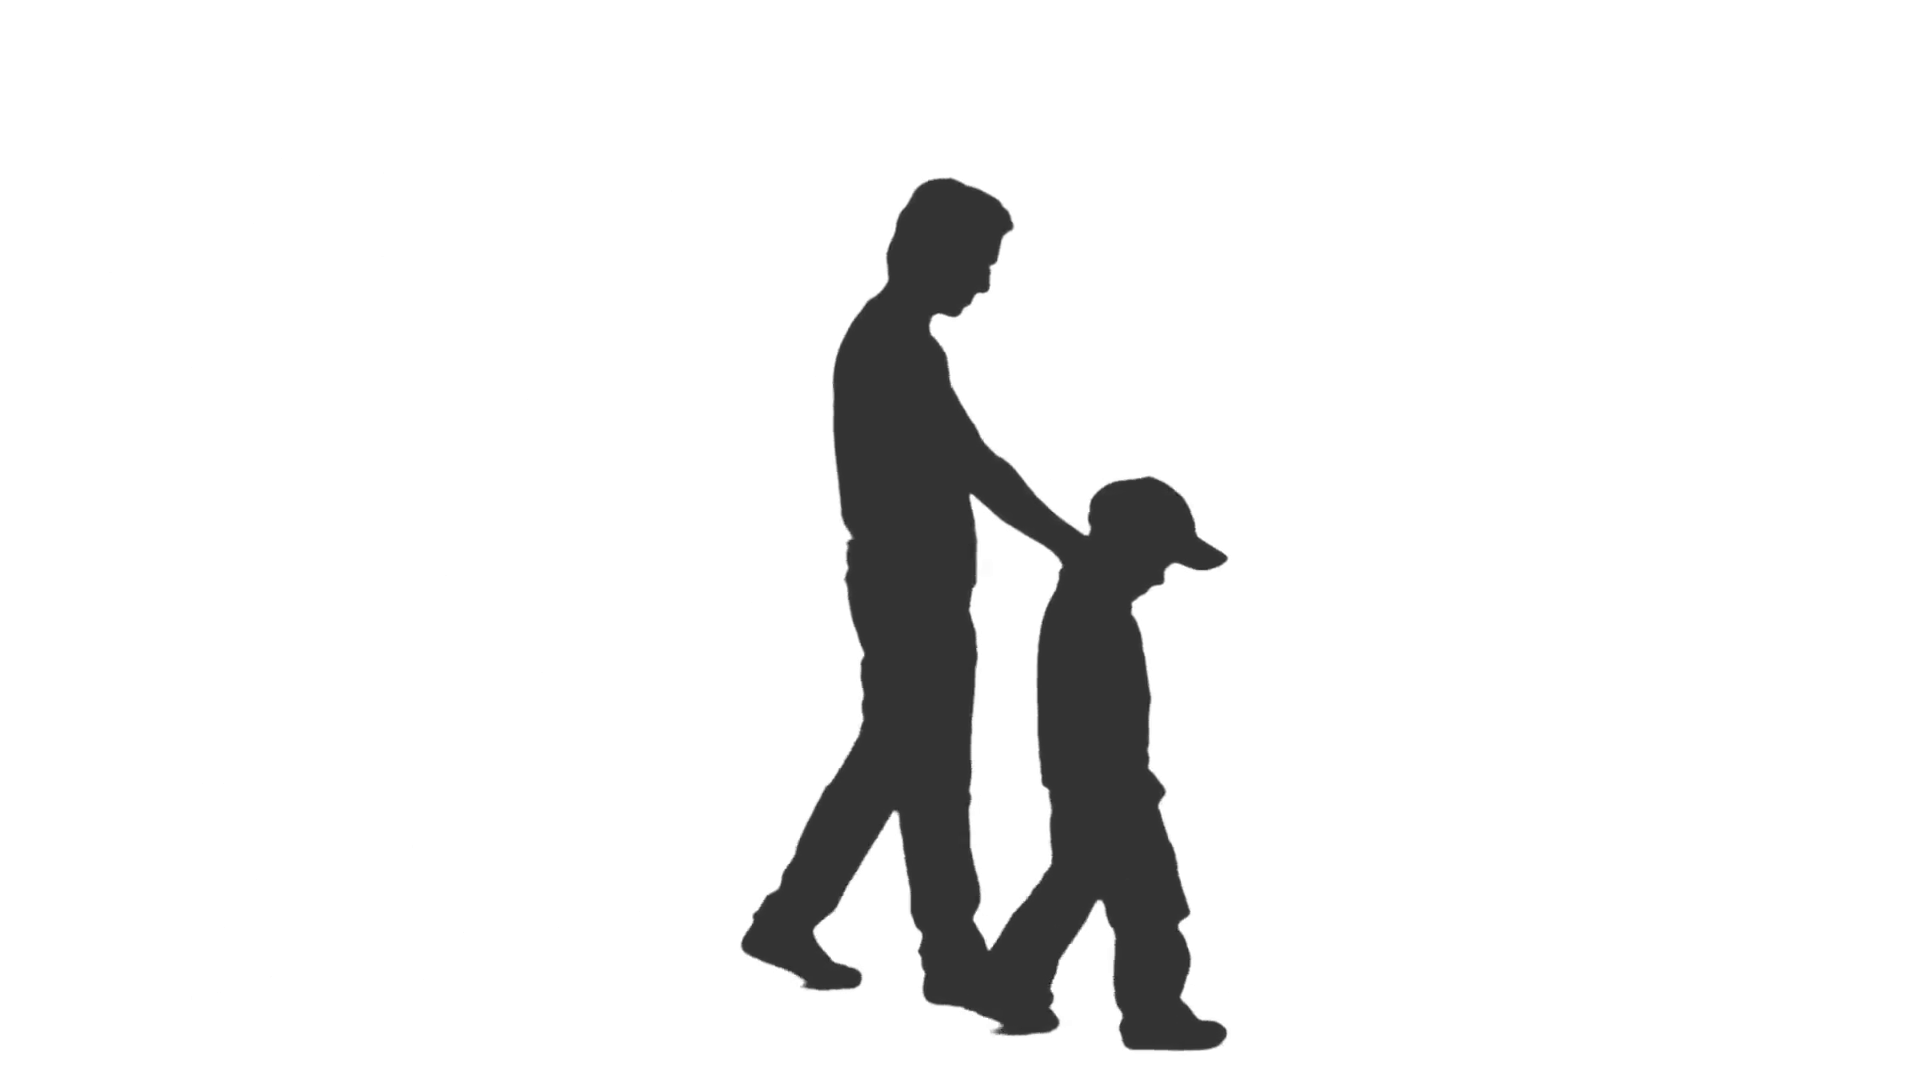 Silhouette Of Person Walking At Getdrawings